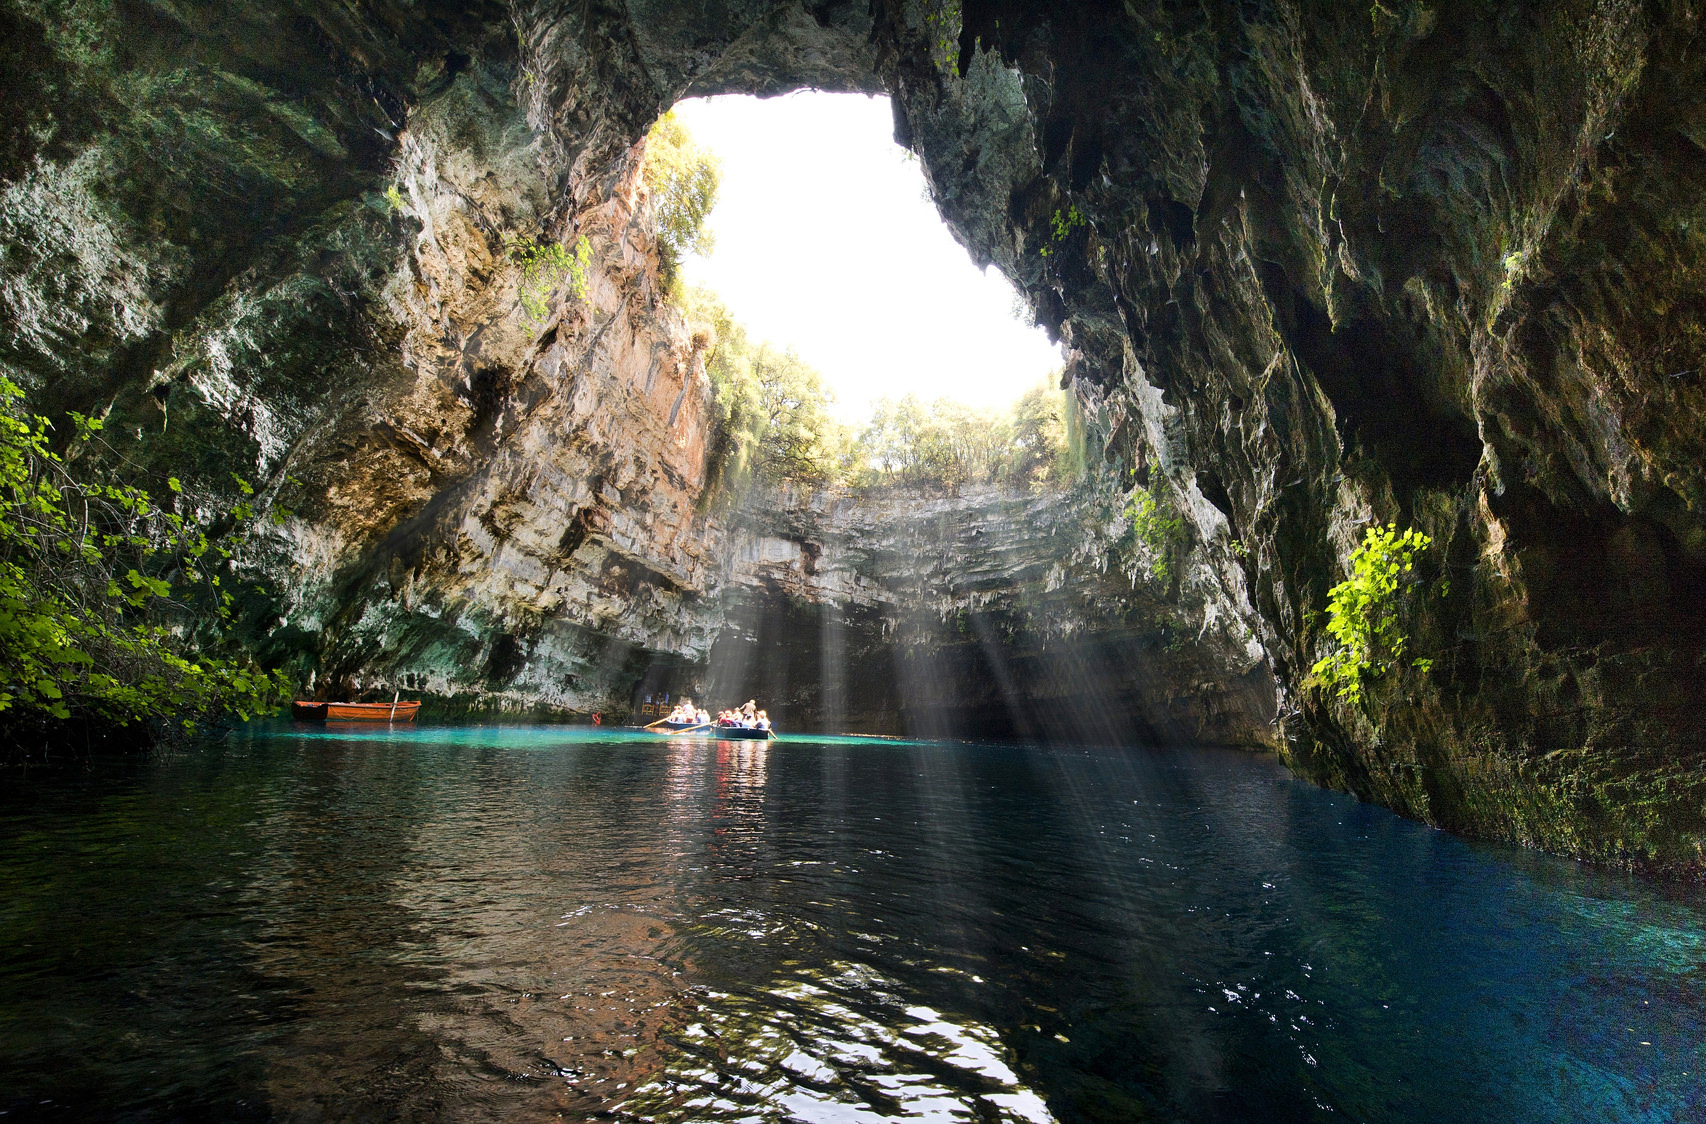 Famous melissani lake on Kefalonia island - GreeceInside famous mellisani lake with on Kefalonia island - GreeceFamous mellisani lake on Kefalonia island - Greece